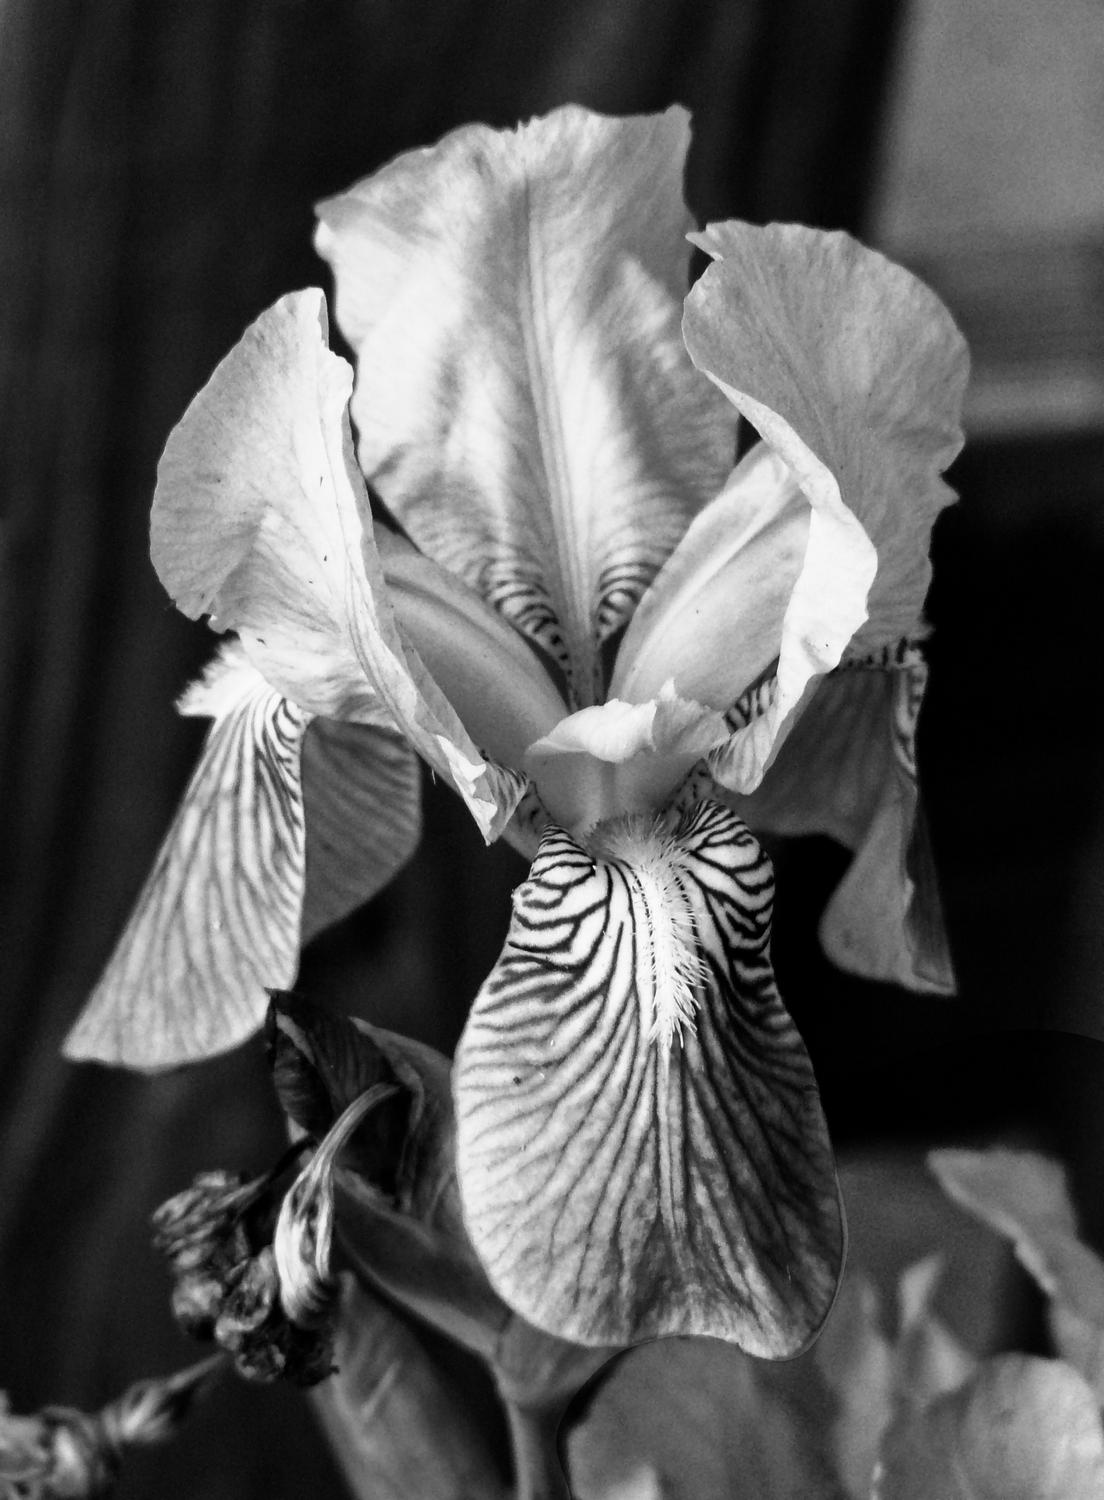 - The Iris, reduced to black and white. - Panasonic DMC-FZ18 - iris - many variations on one photograph - - art  - photography - by Tony Karp